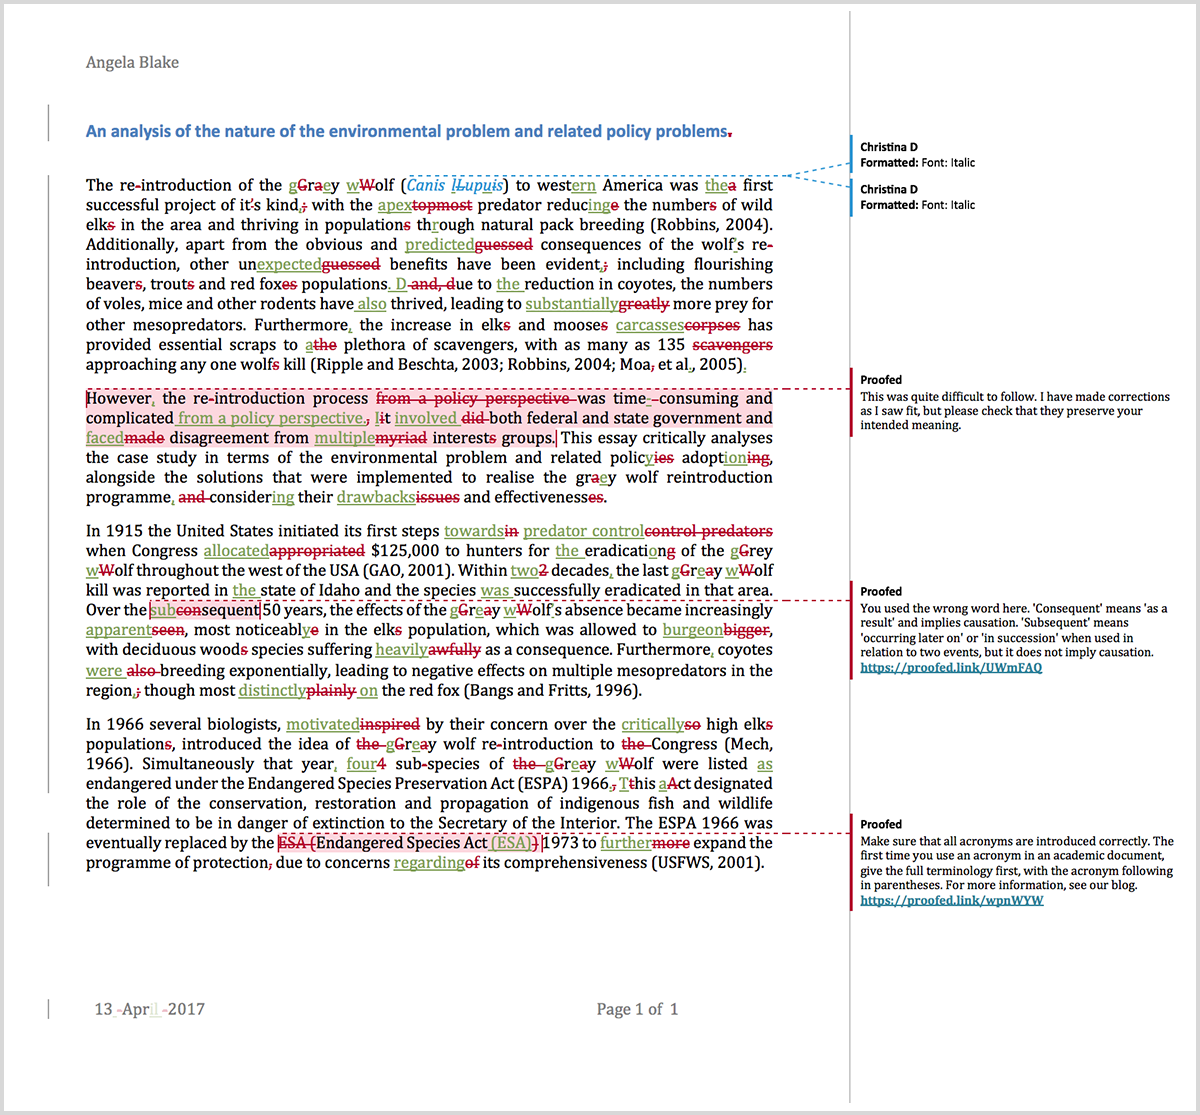 Microsoft Word proofreading example (after editing)